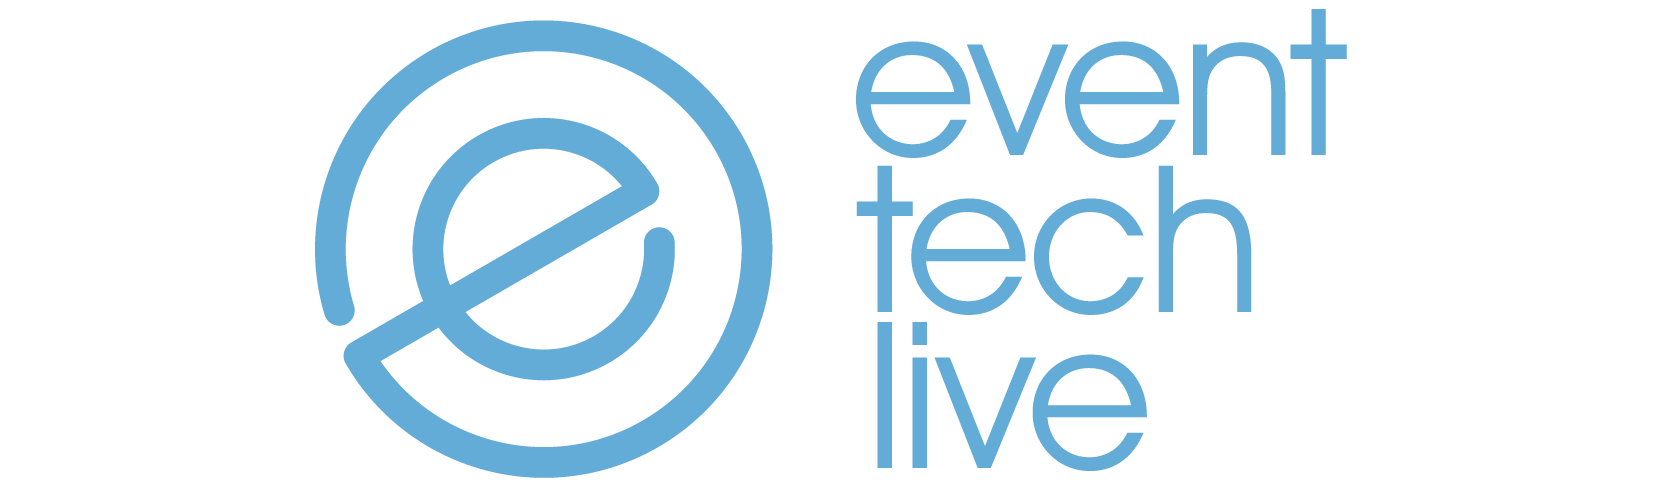 event tech live logo